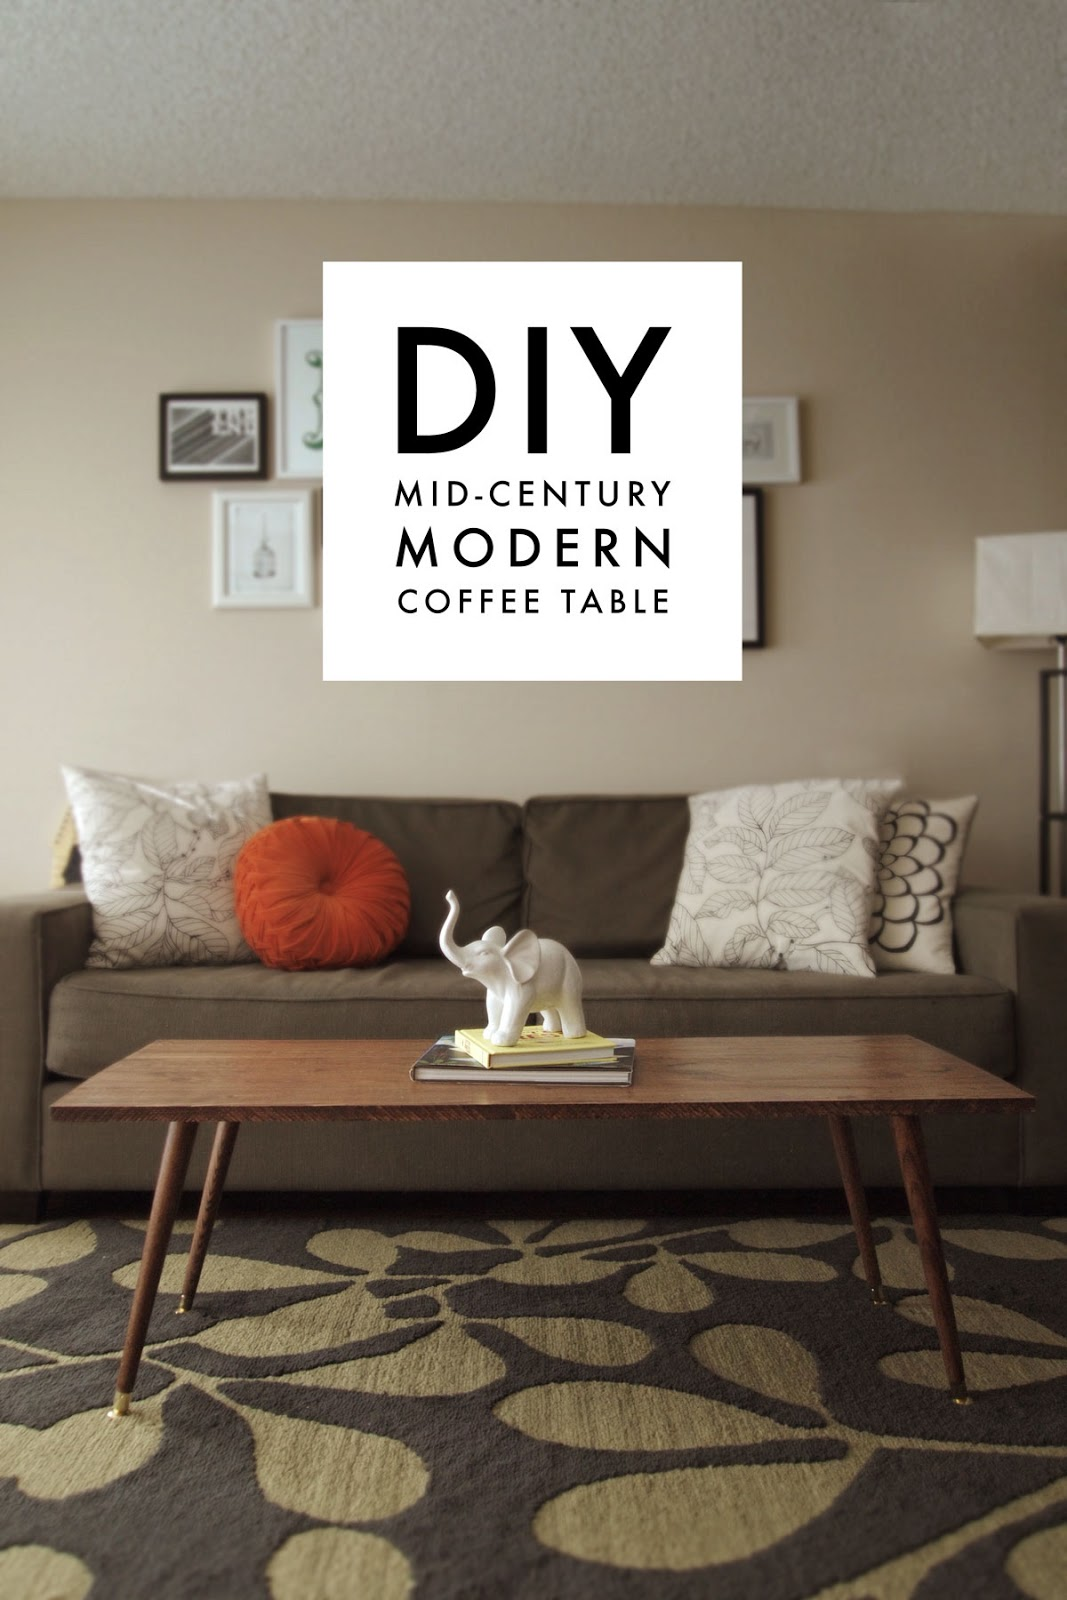 square wood end table the outrageous awesome mid century diy modern coffee jamie bartlett design coffeetable target mission style chairside farm kitchen sets tall with shelves